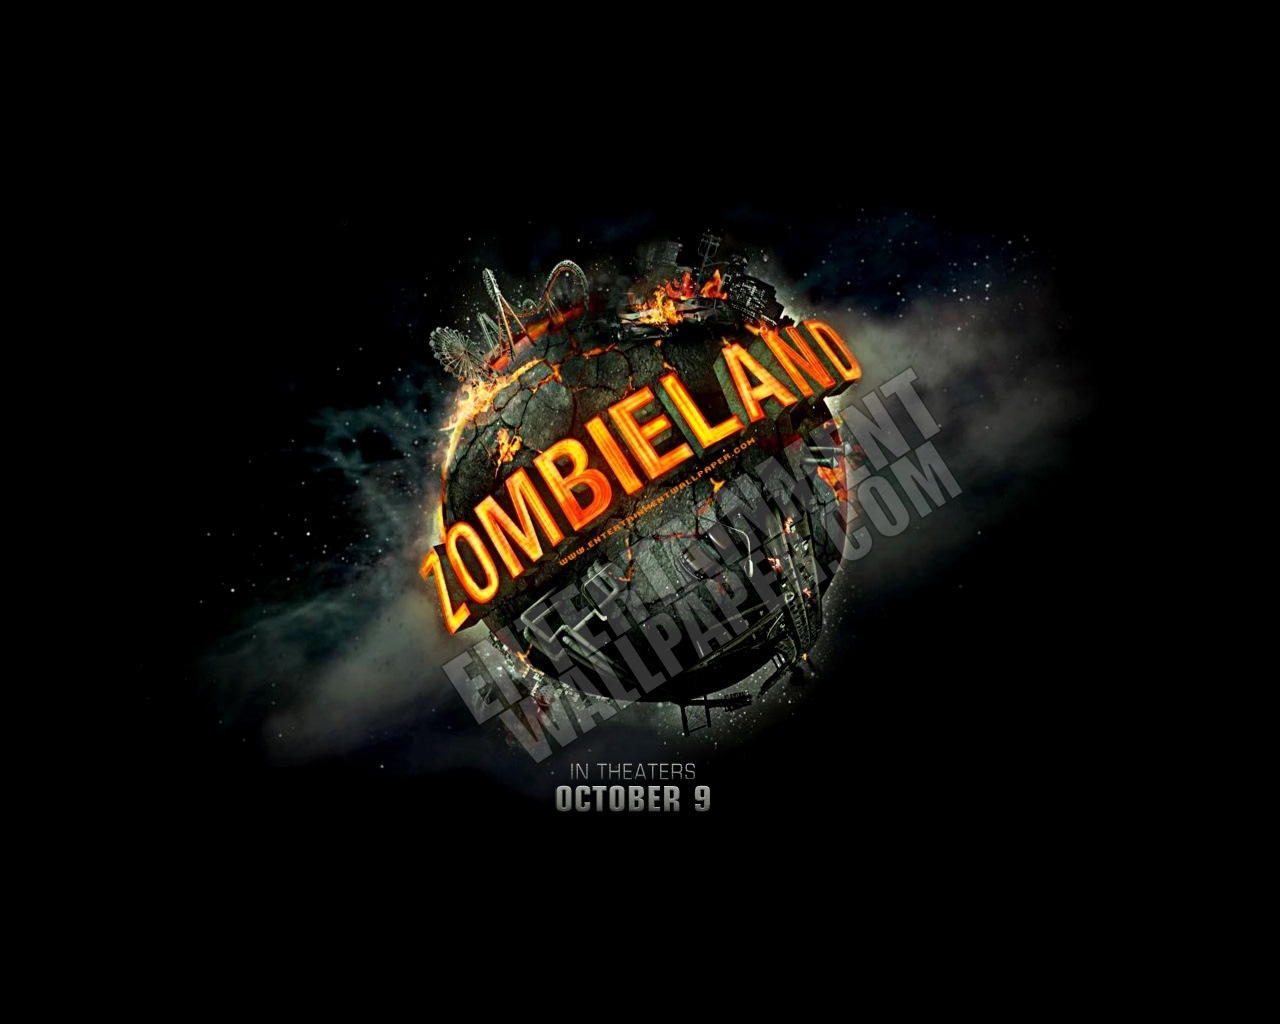 Download mobile wallpaper Zombieland, Cinema for free.